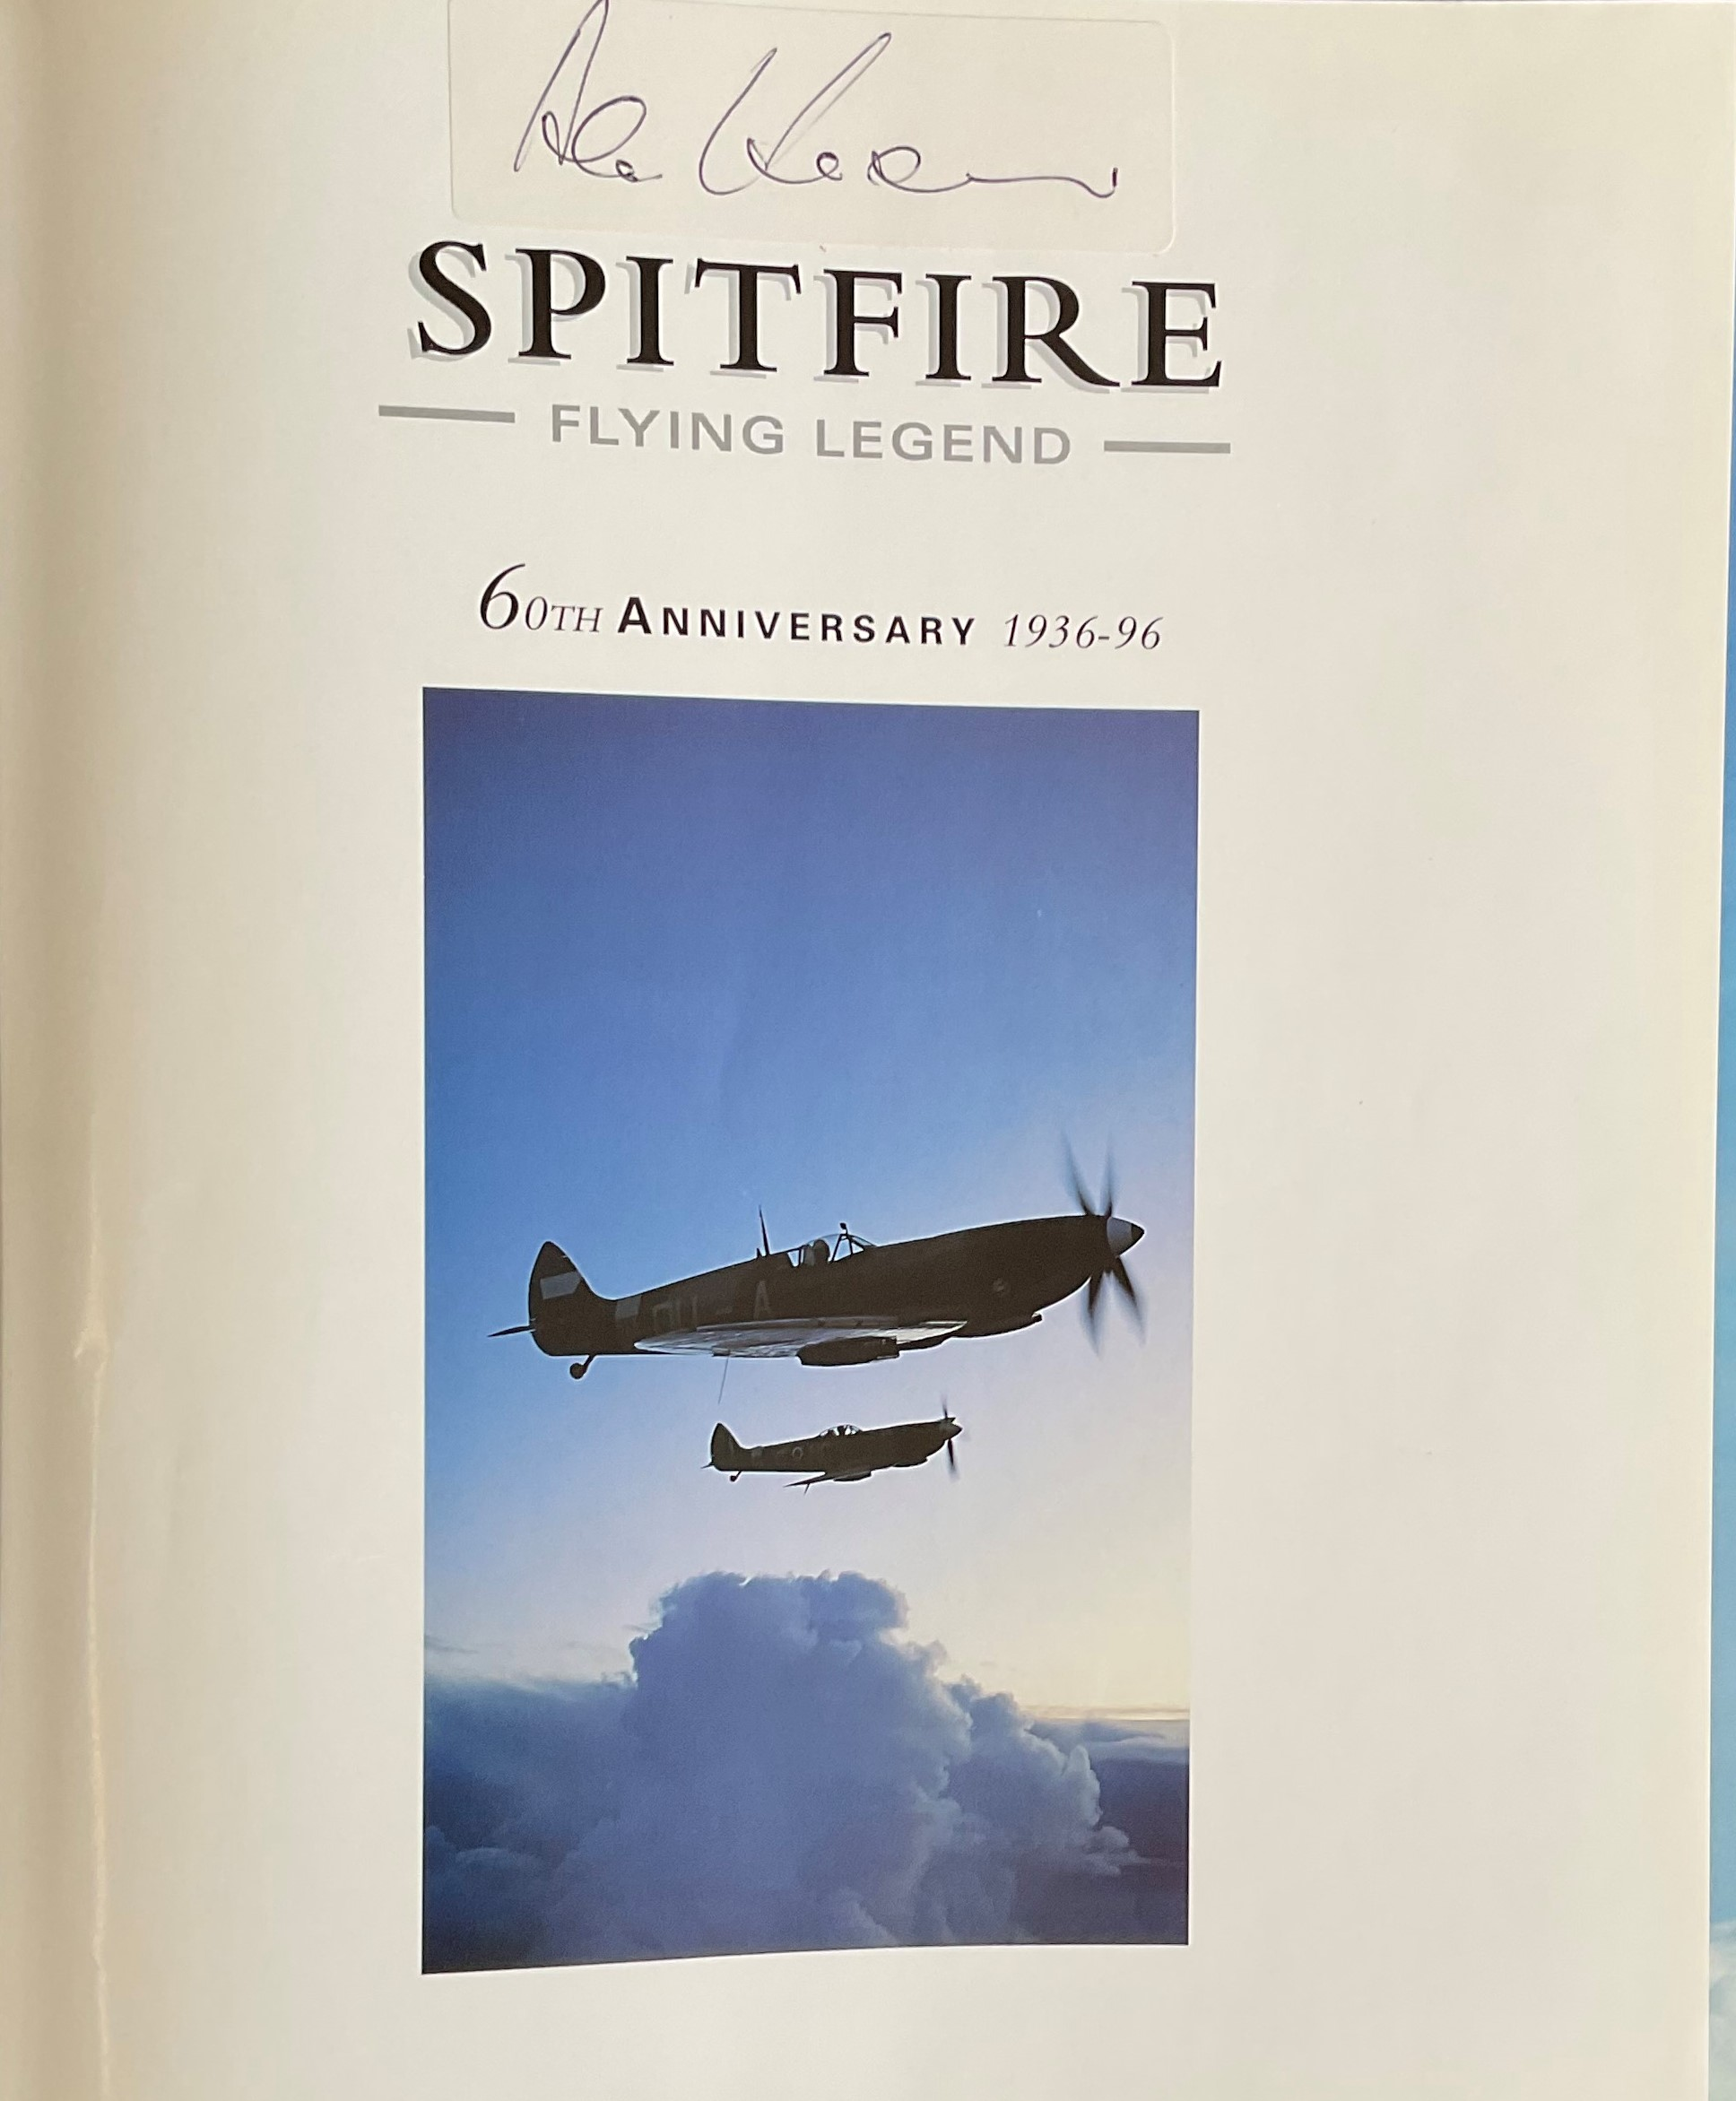 John Dibbs and Tony Holmes. Spitfire Flying Legend. 60th anniversary 1936 96. Second Edition - Image 3 of 3